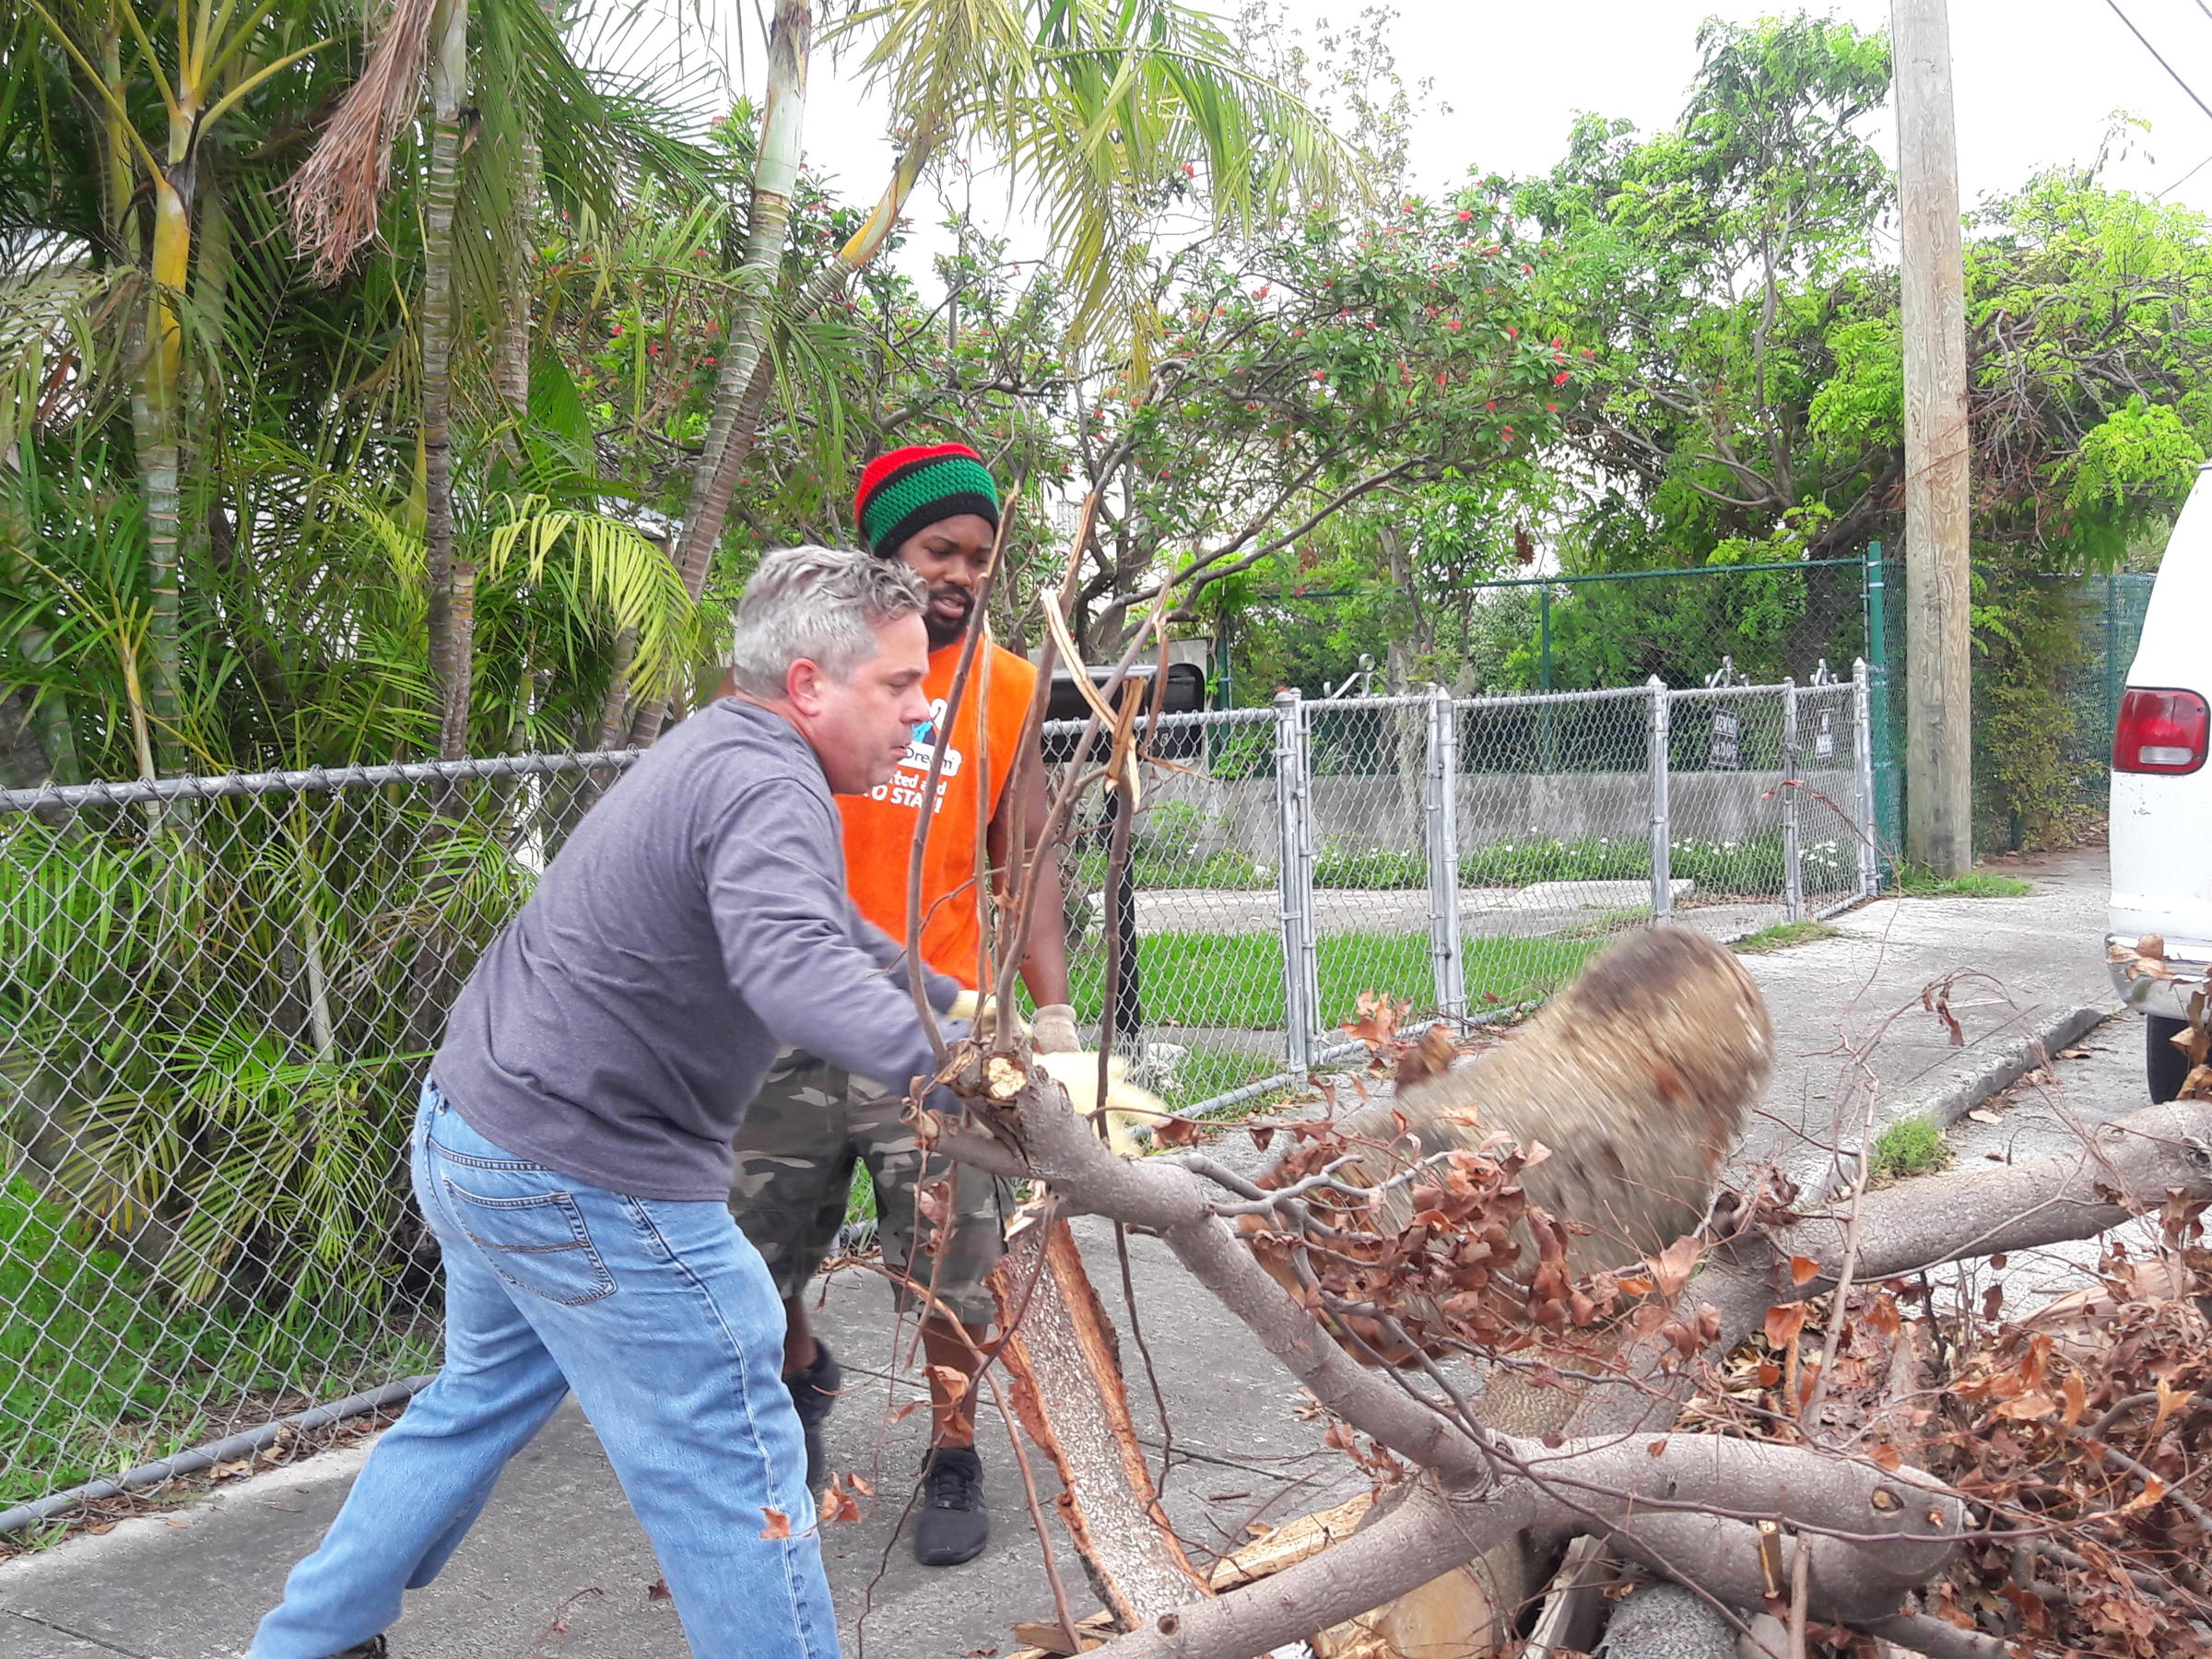 Phantasy Alittle Havana Volunteers New Hampshire Free Tree Removal Detroit Robert Ruono Francois Alexandre Work On Clearing Tree Branches Create Collective To Offer Free Tree Free Tree Removal houzz-02 Free Tree Removal